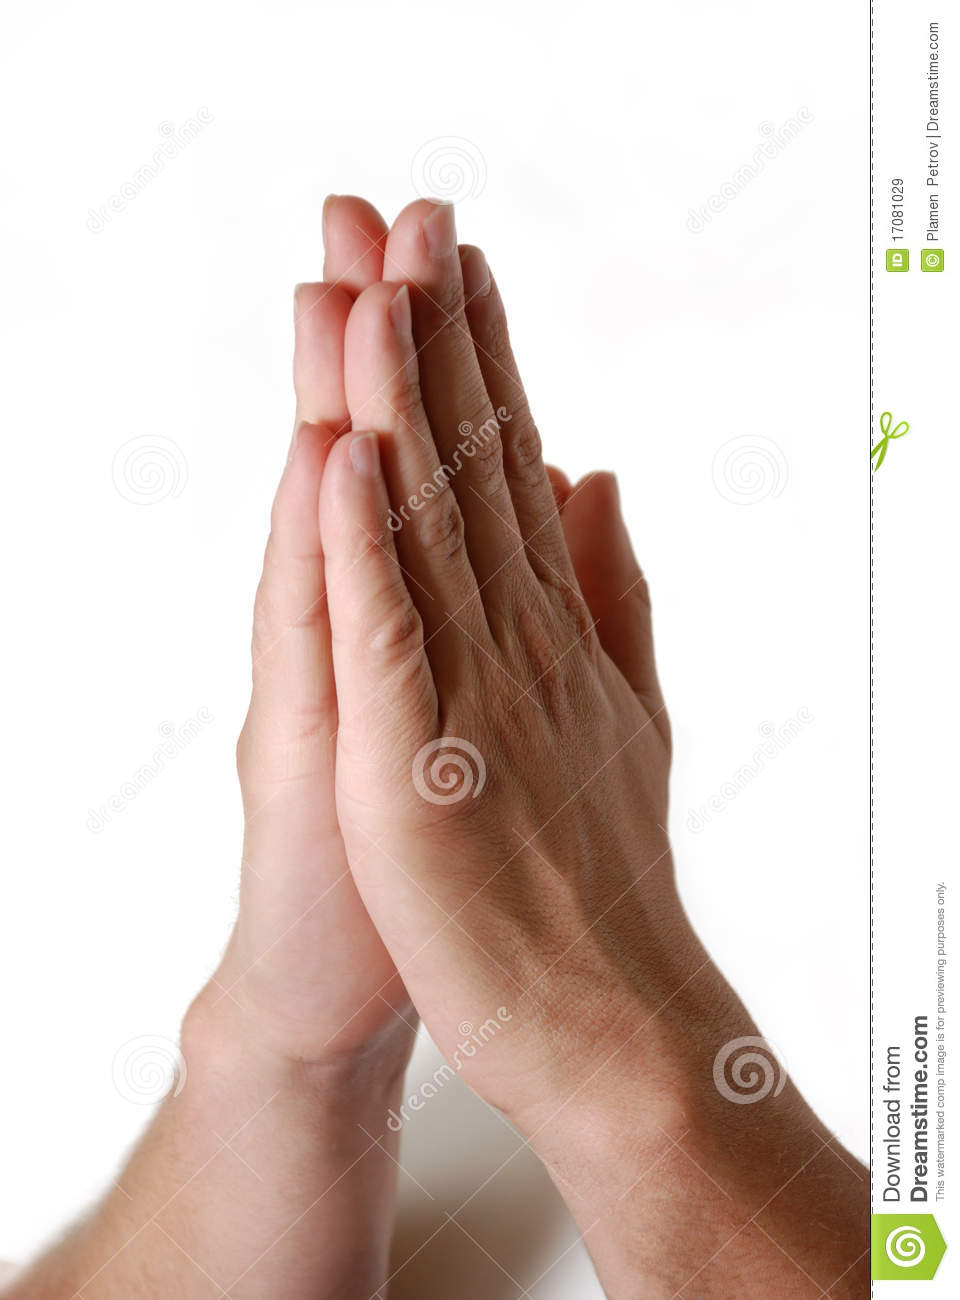 Praying Hands Royalty Free Stock Images - Image: 17081029